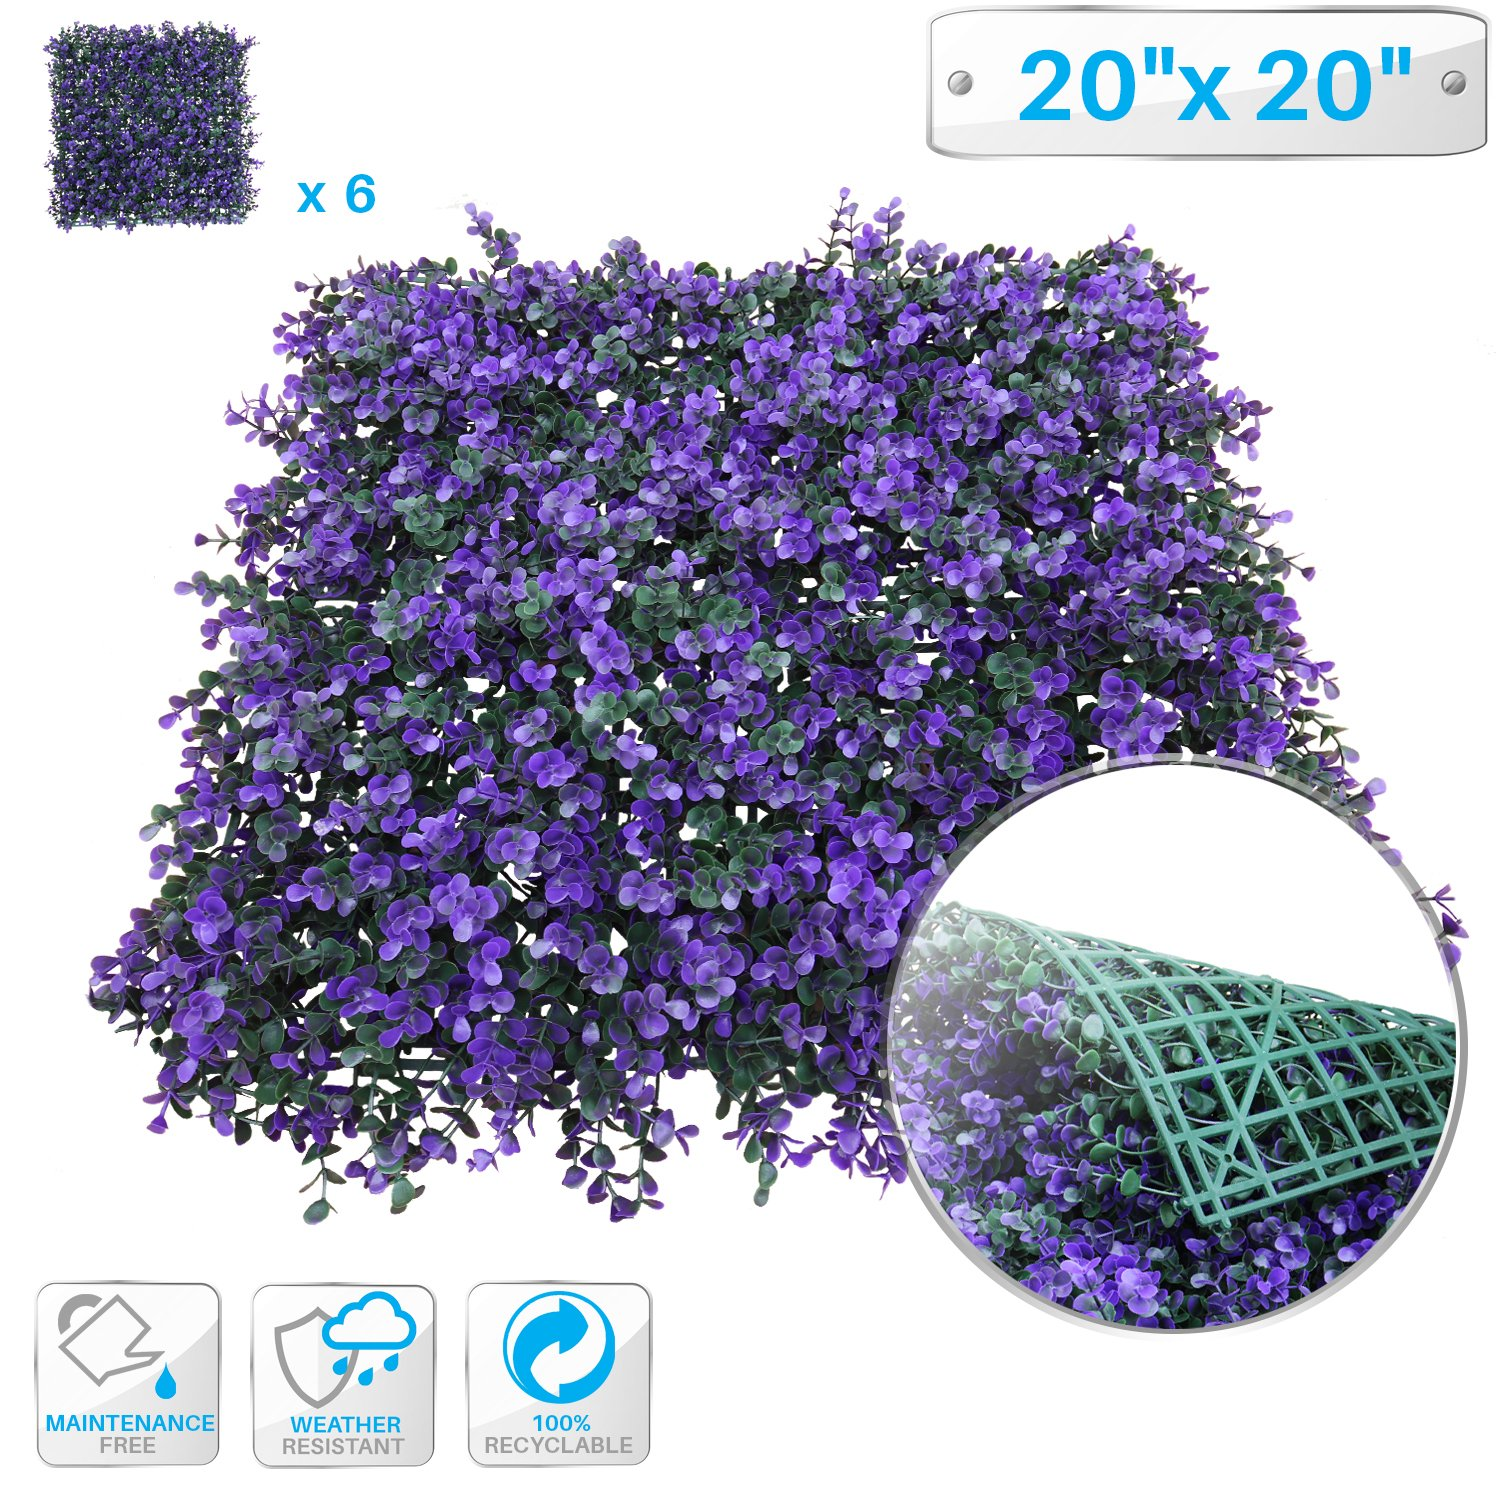 """Patio Paradise 6pcs 20""""x20"""" Artificial Purple Lavender Hedge Panel, Decorative Privacy Fence Screen Greenery Faux Plant Tree Wall for Indoor or Outdoor Garden Décor"""